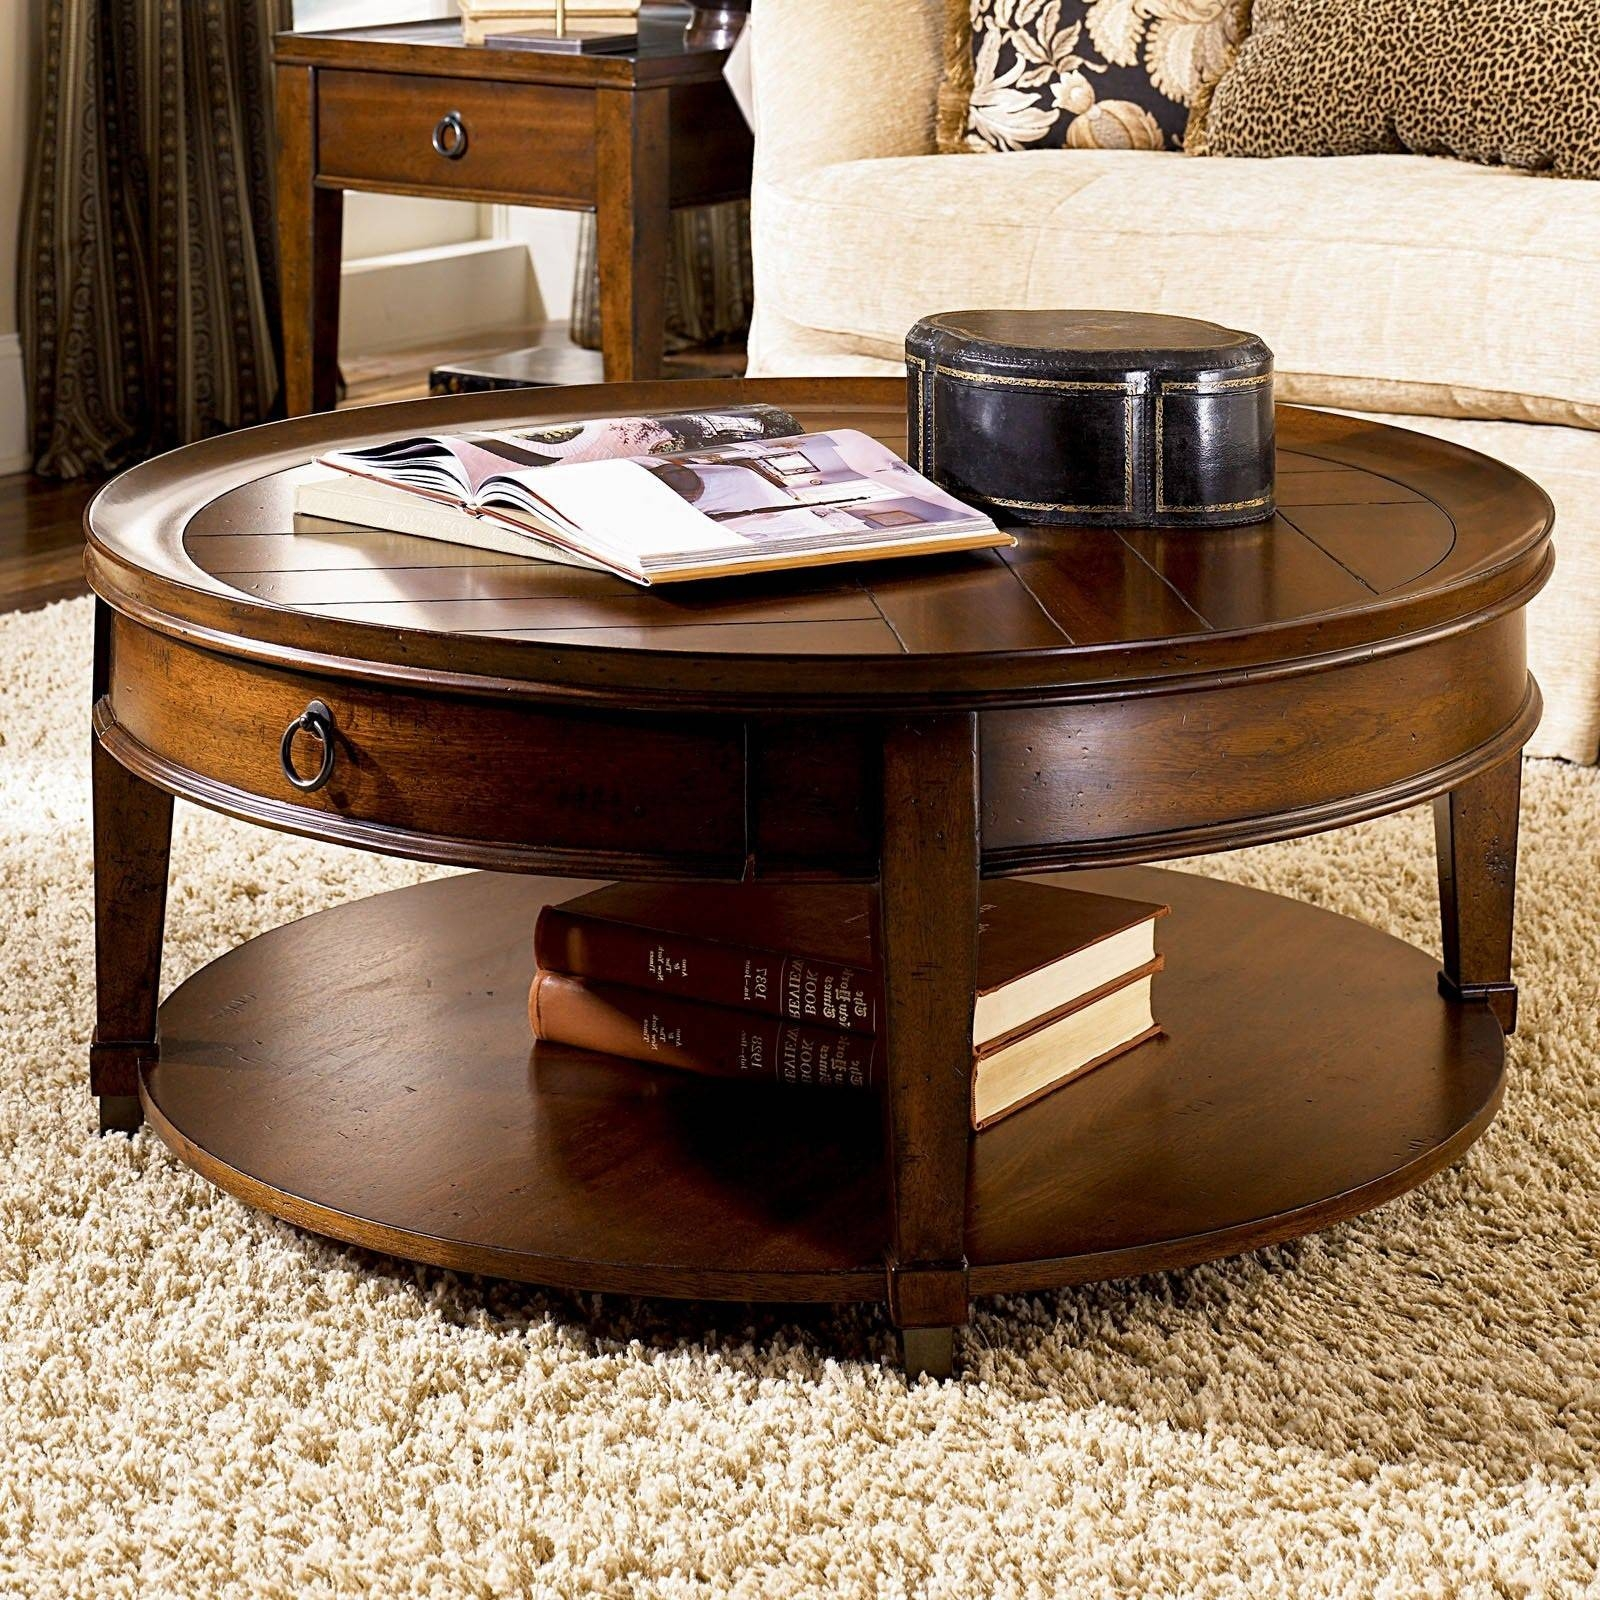 Elegant Stylish Round Coffee Table With Storage Dark Brown Finish throughout Round Coffee Tables With Drawers (Image 8 of 30)